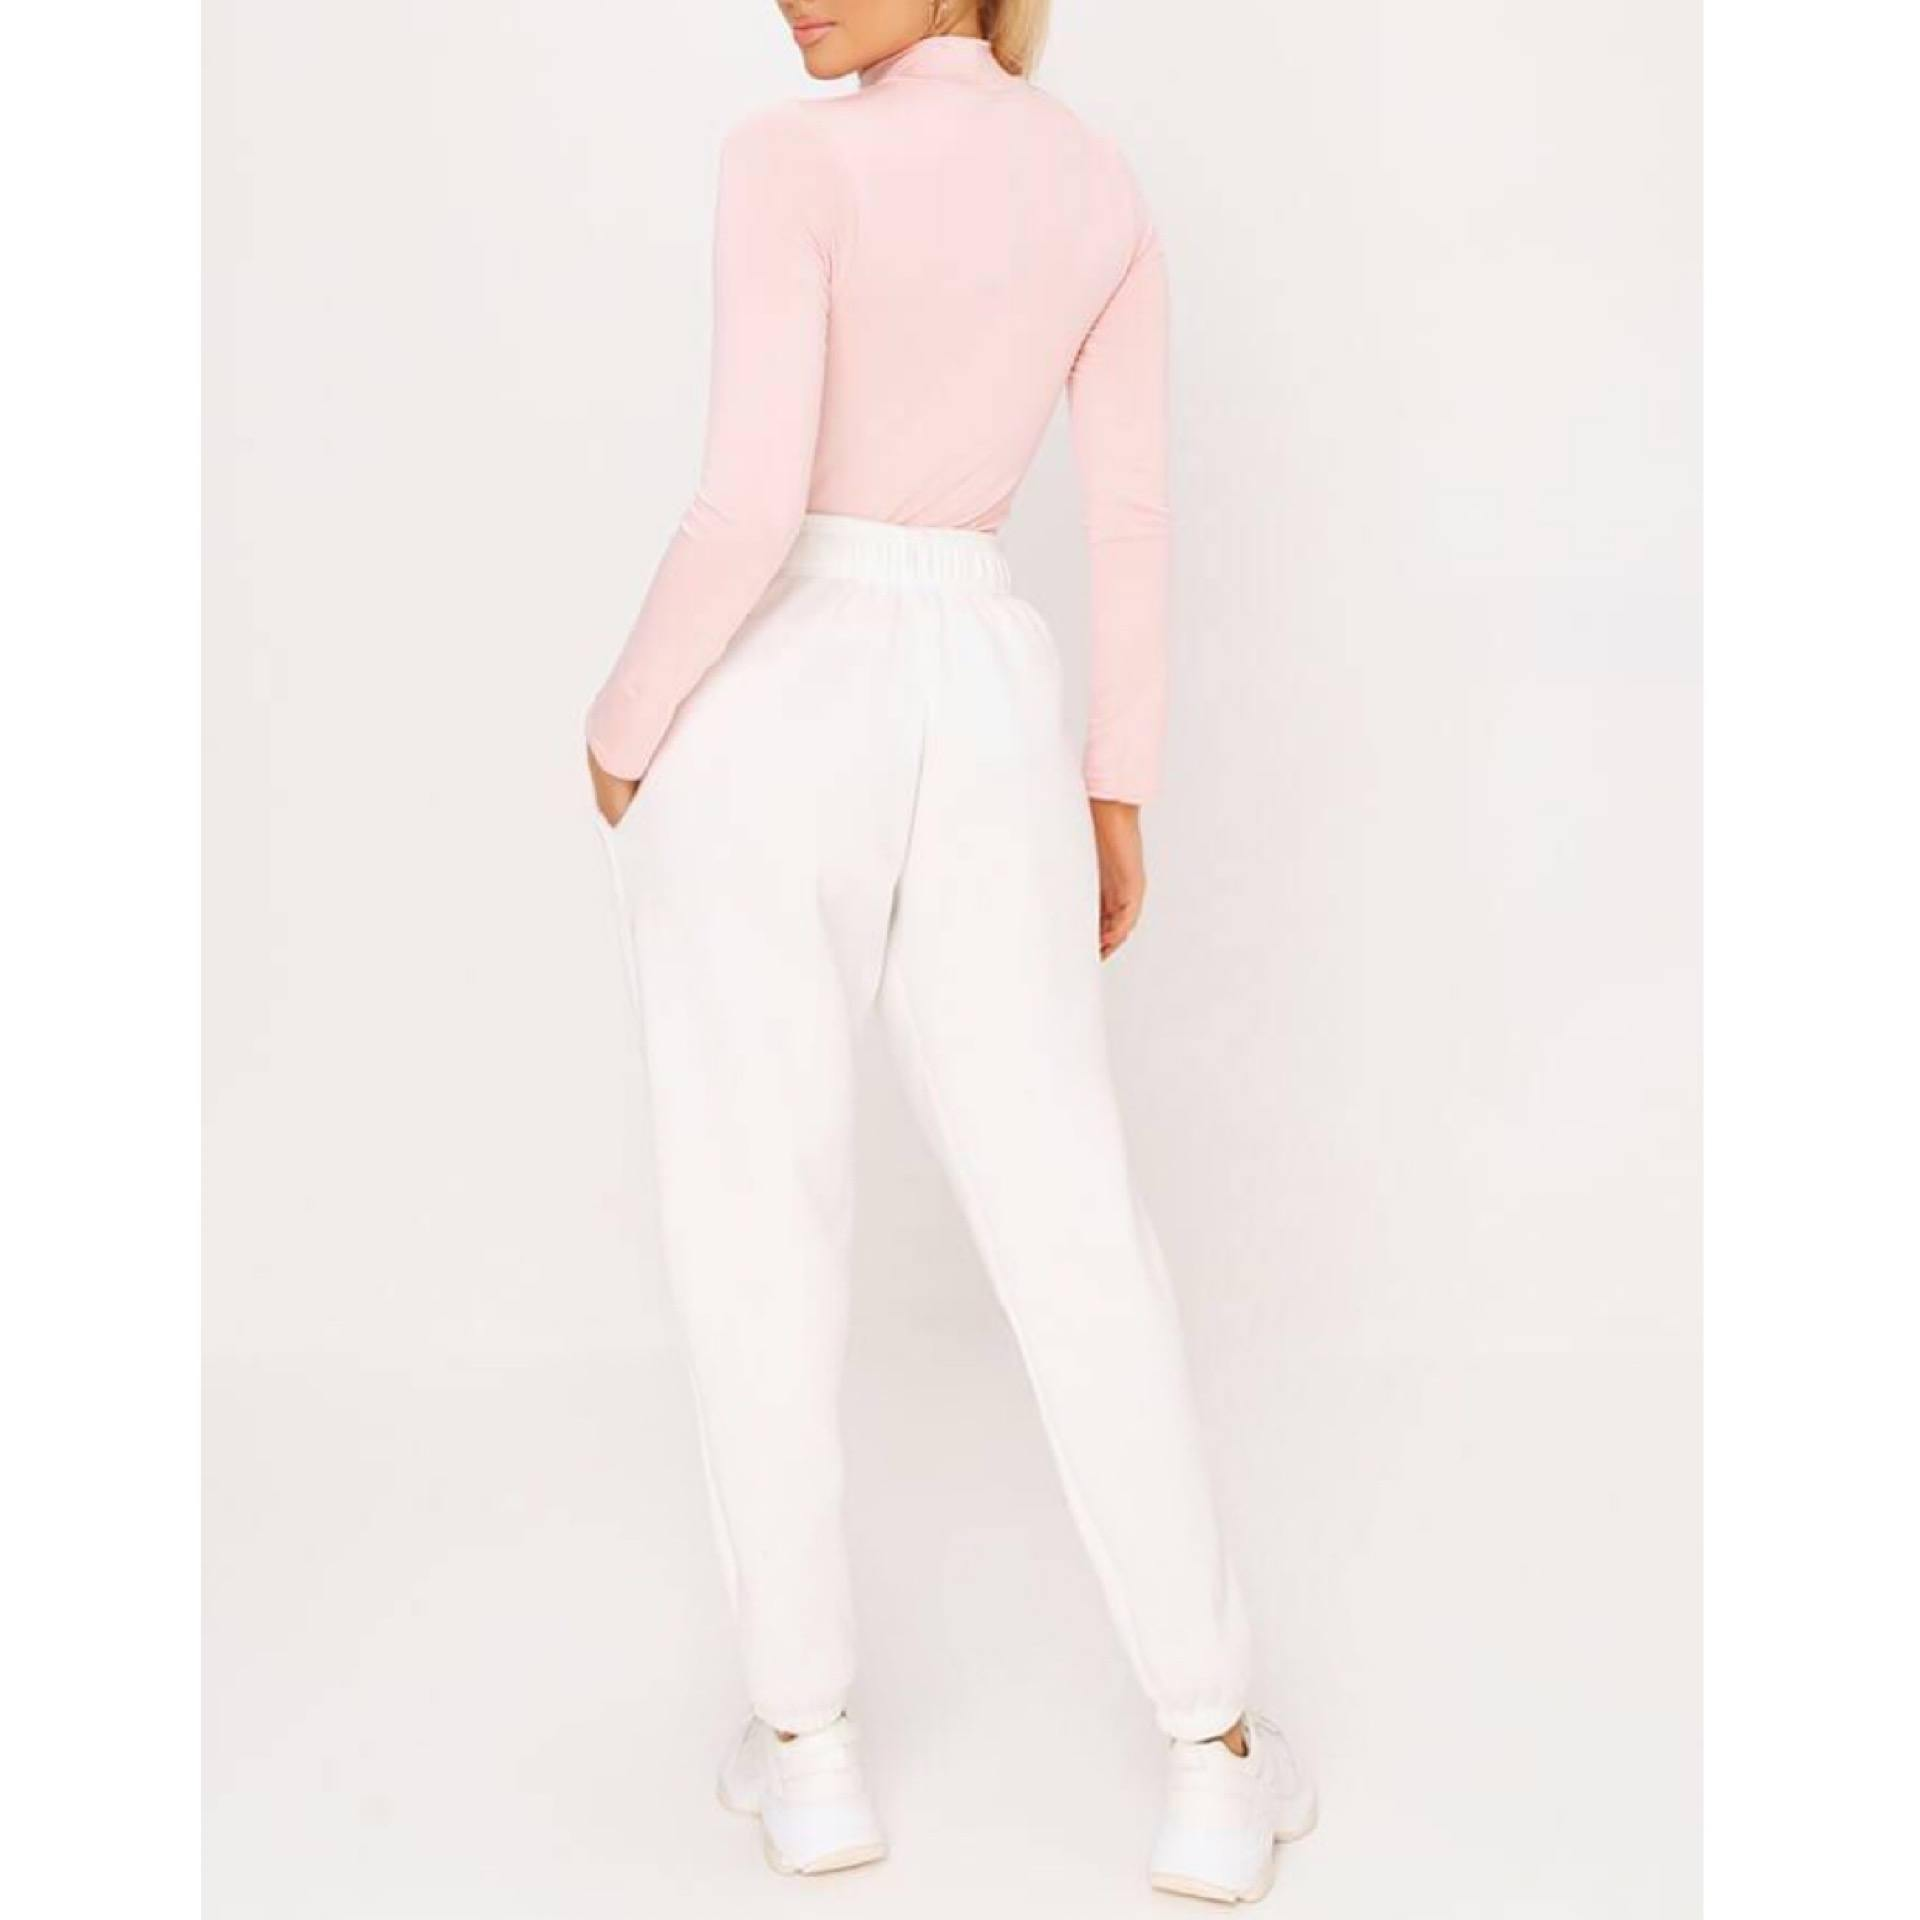 Baby Pink Turtleneck Top - Flamour.ro